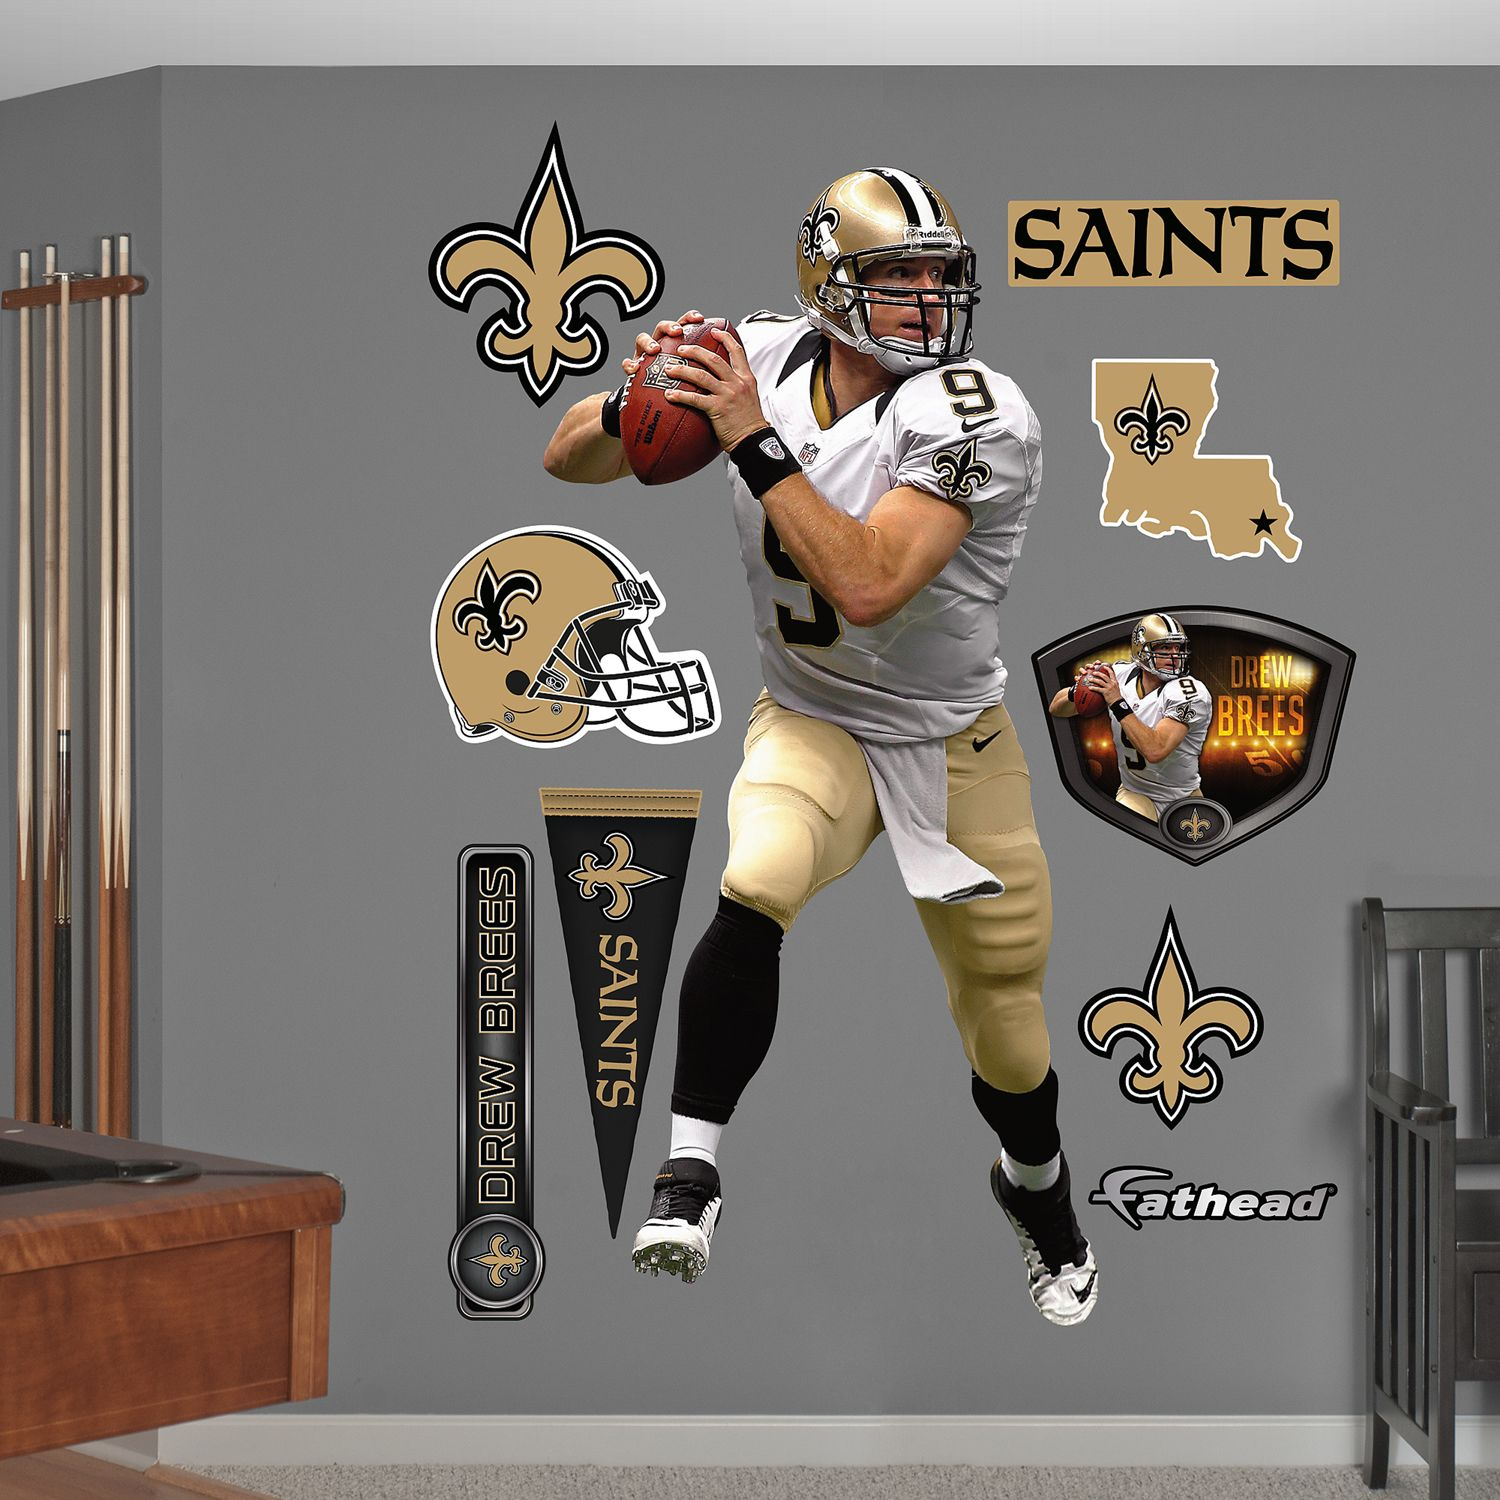 Regular & New Orleans Saints Drew Brees Wall Decals by Fathead Jr.